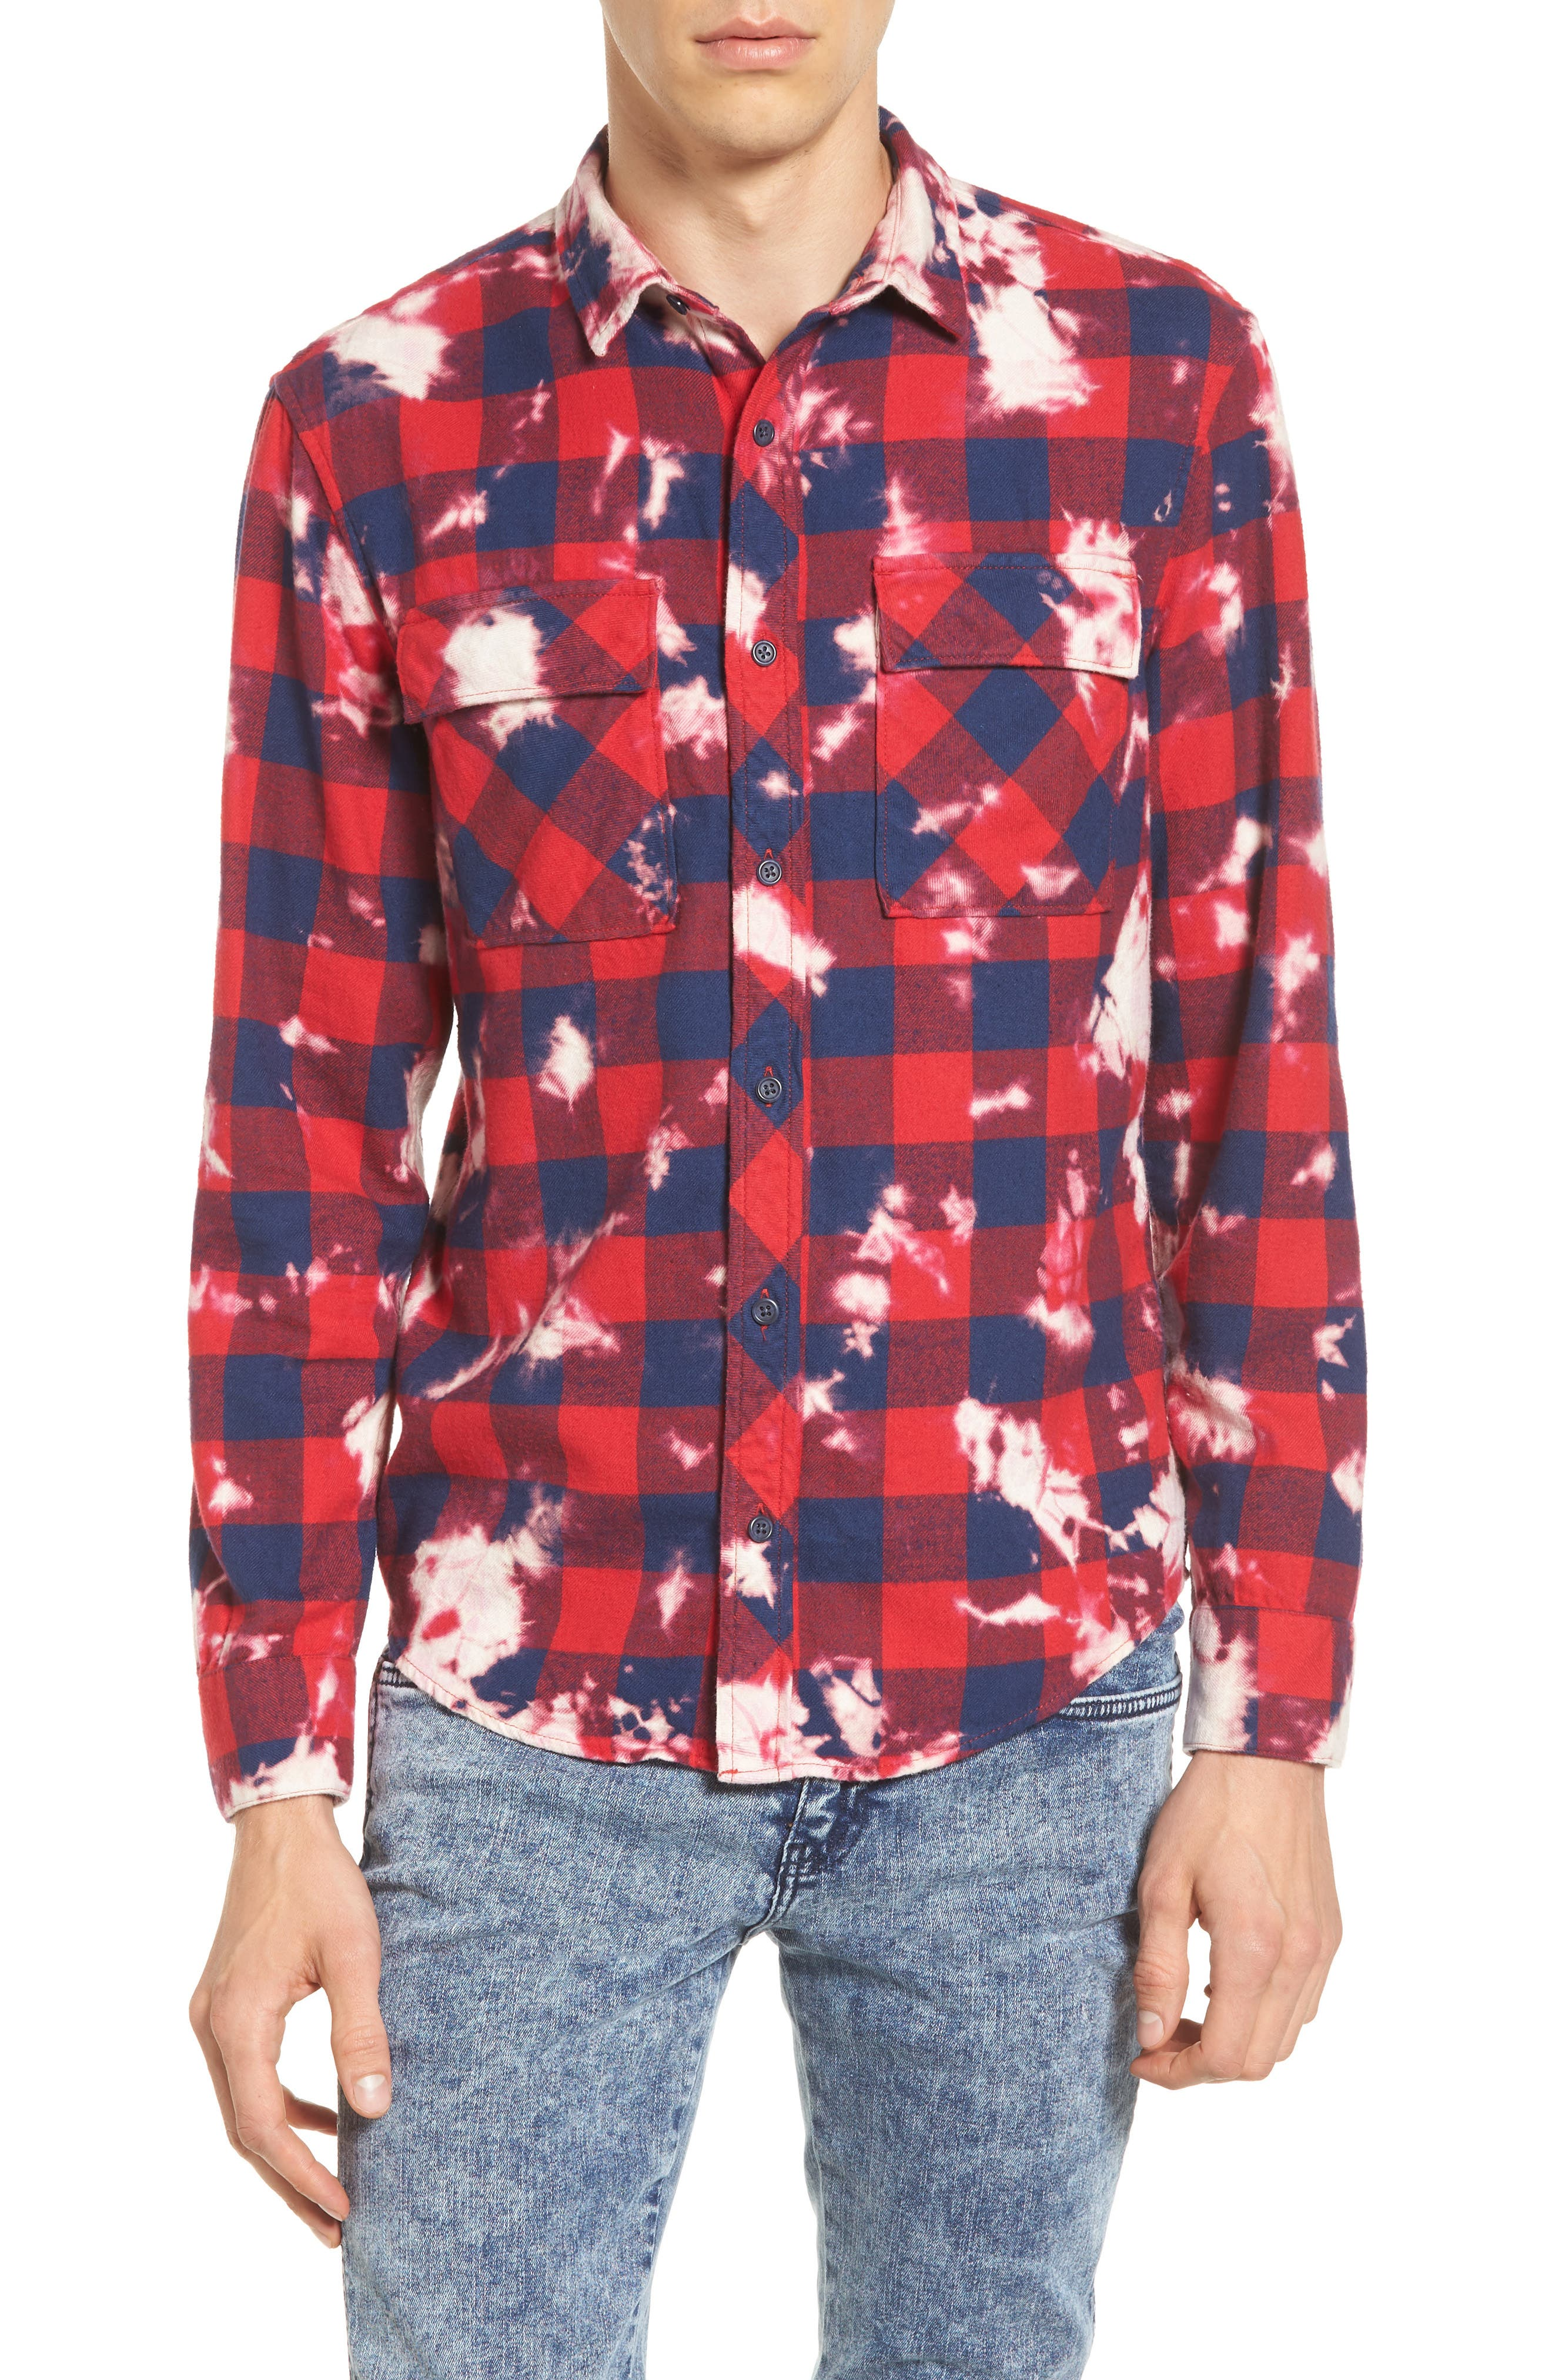 The Rail Bleach Plaid Shirt